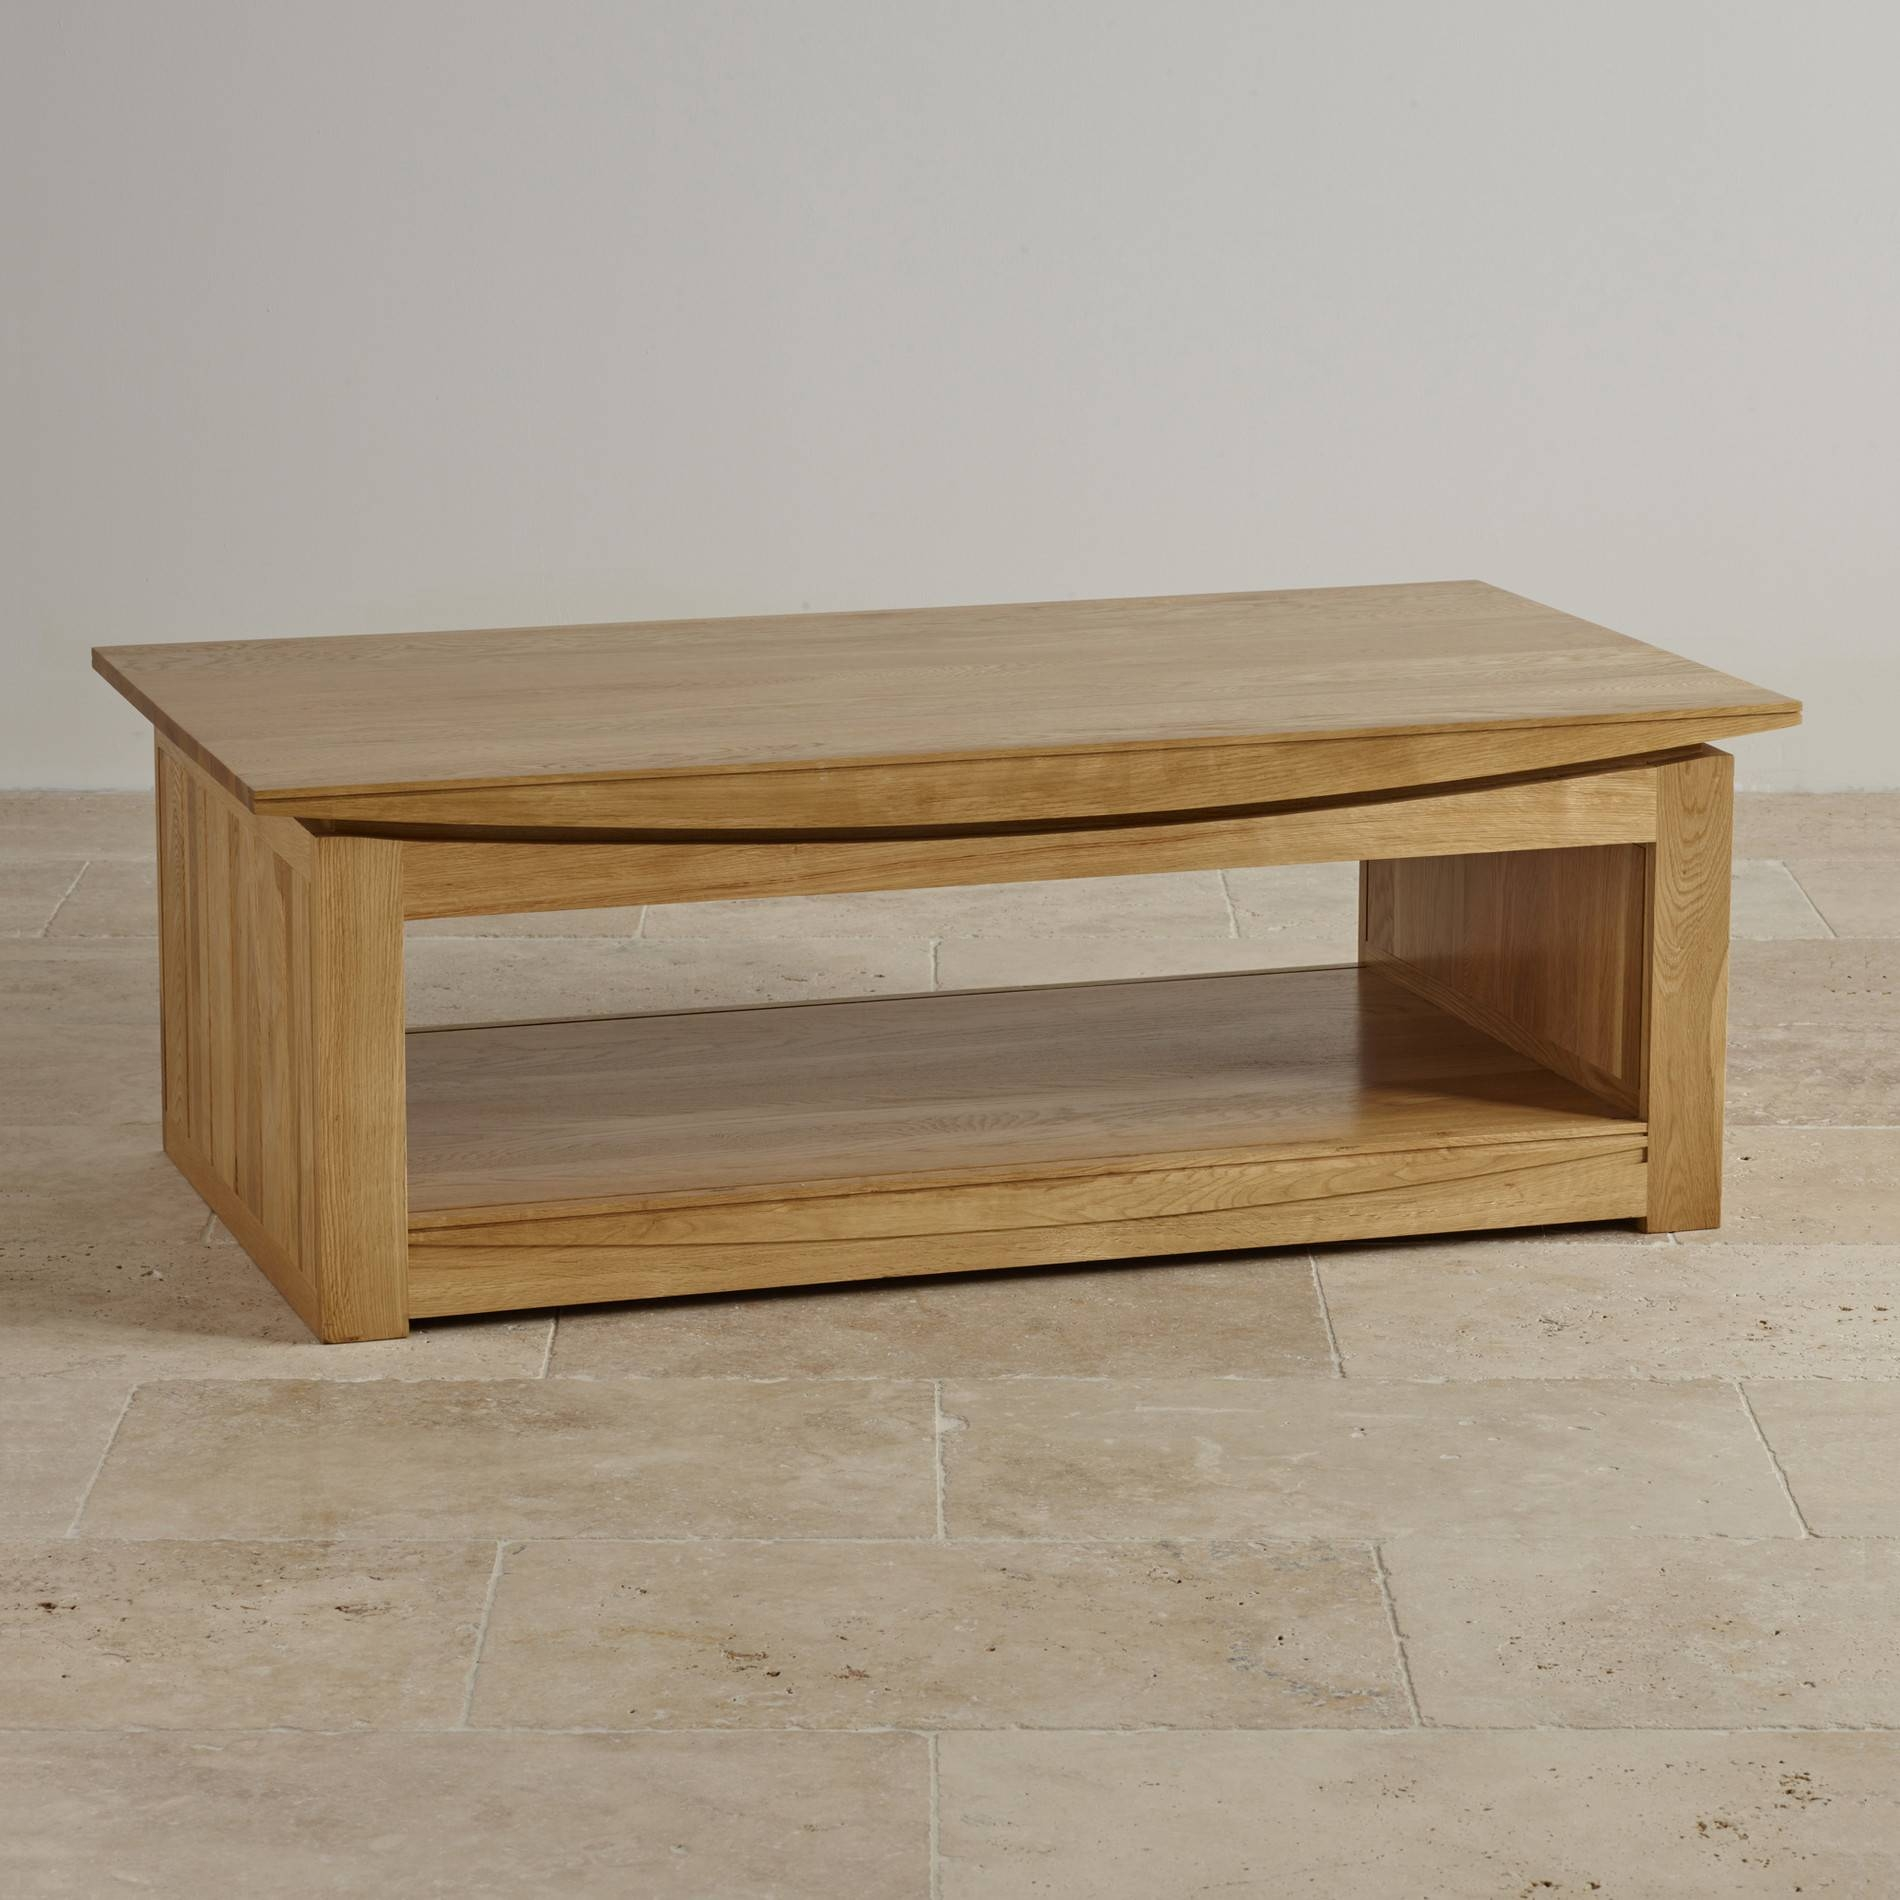 Solid Oak Coffee Tables And End Tables | Coffee Tables Decoration intended for Oak Coffee Tables With Shelf (Image 29 of 30)